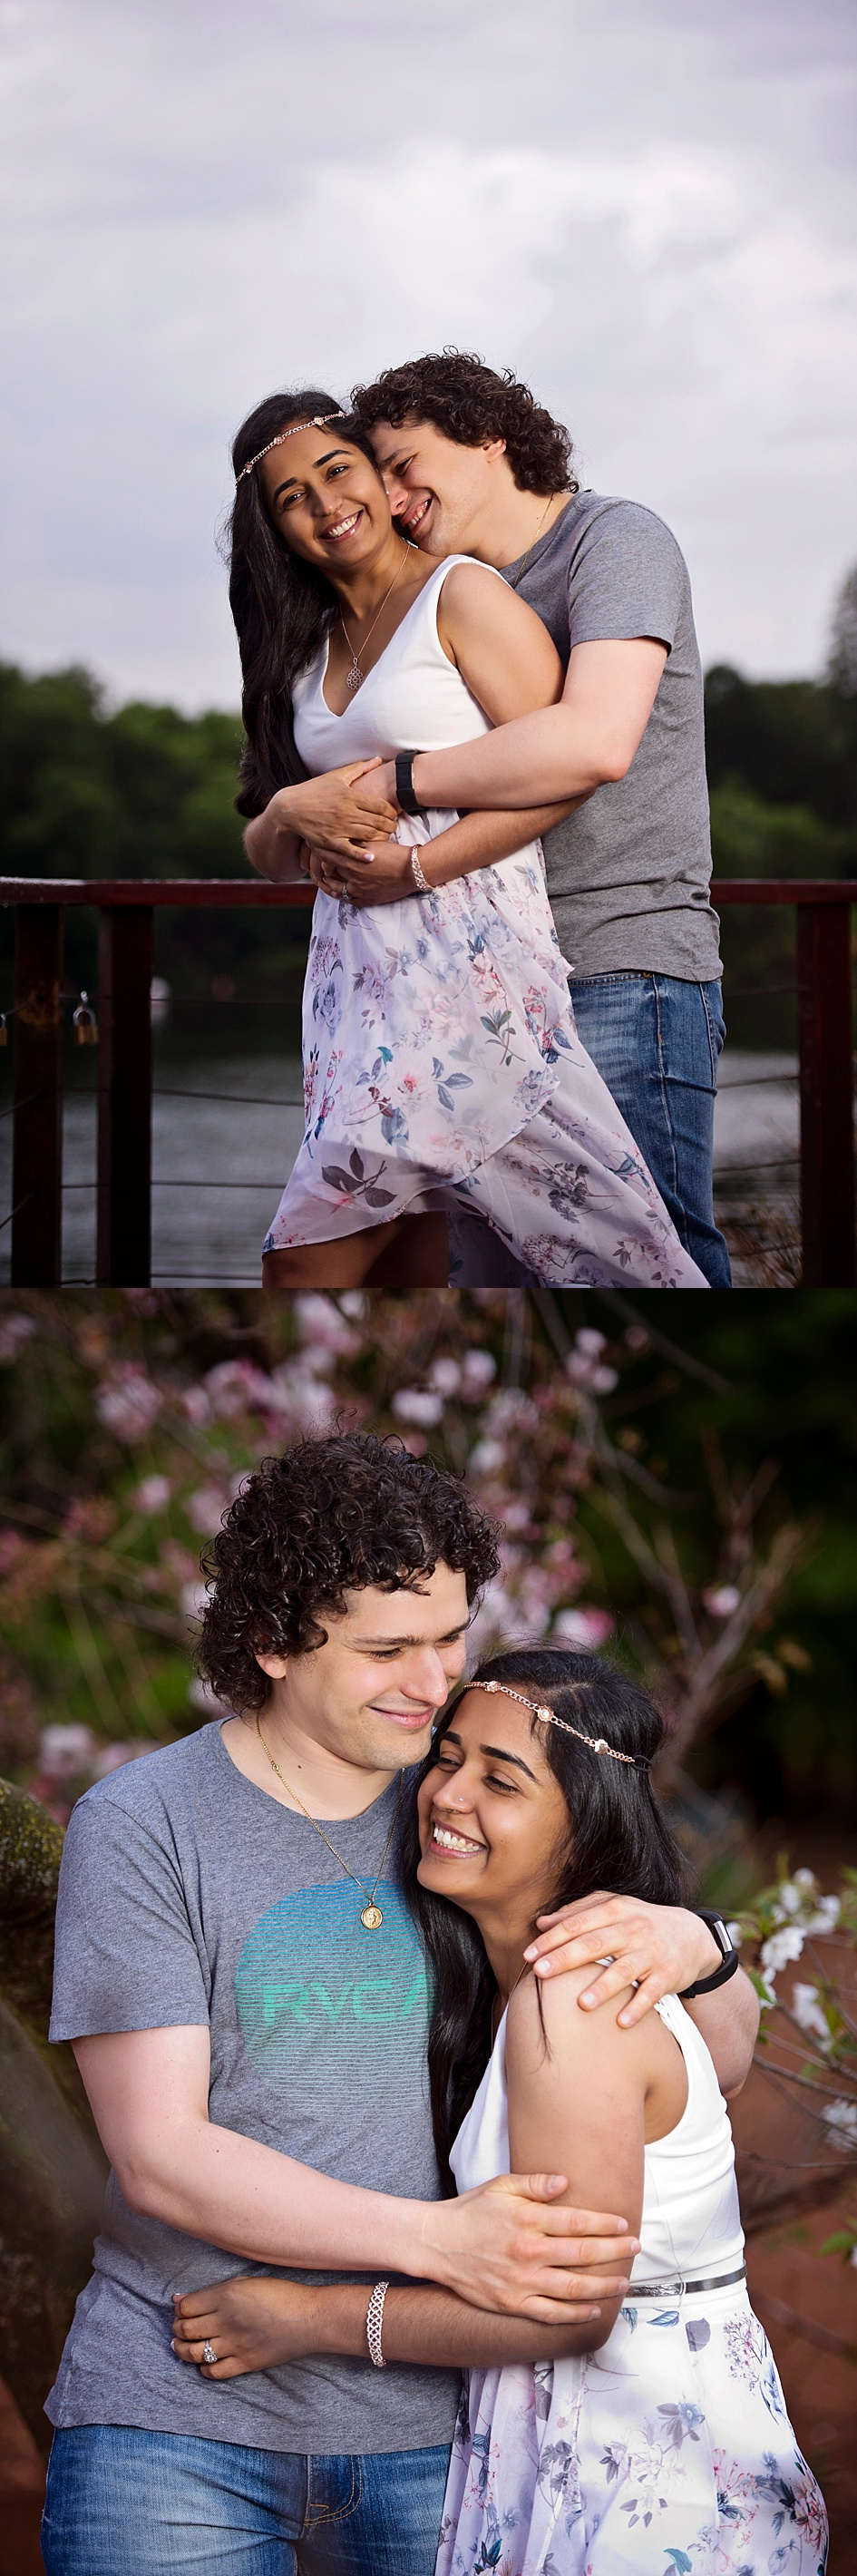 cloudy-engagement-shoot.jpg